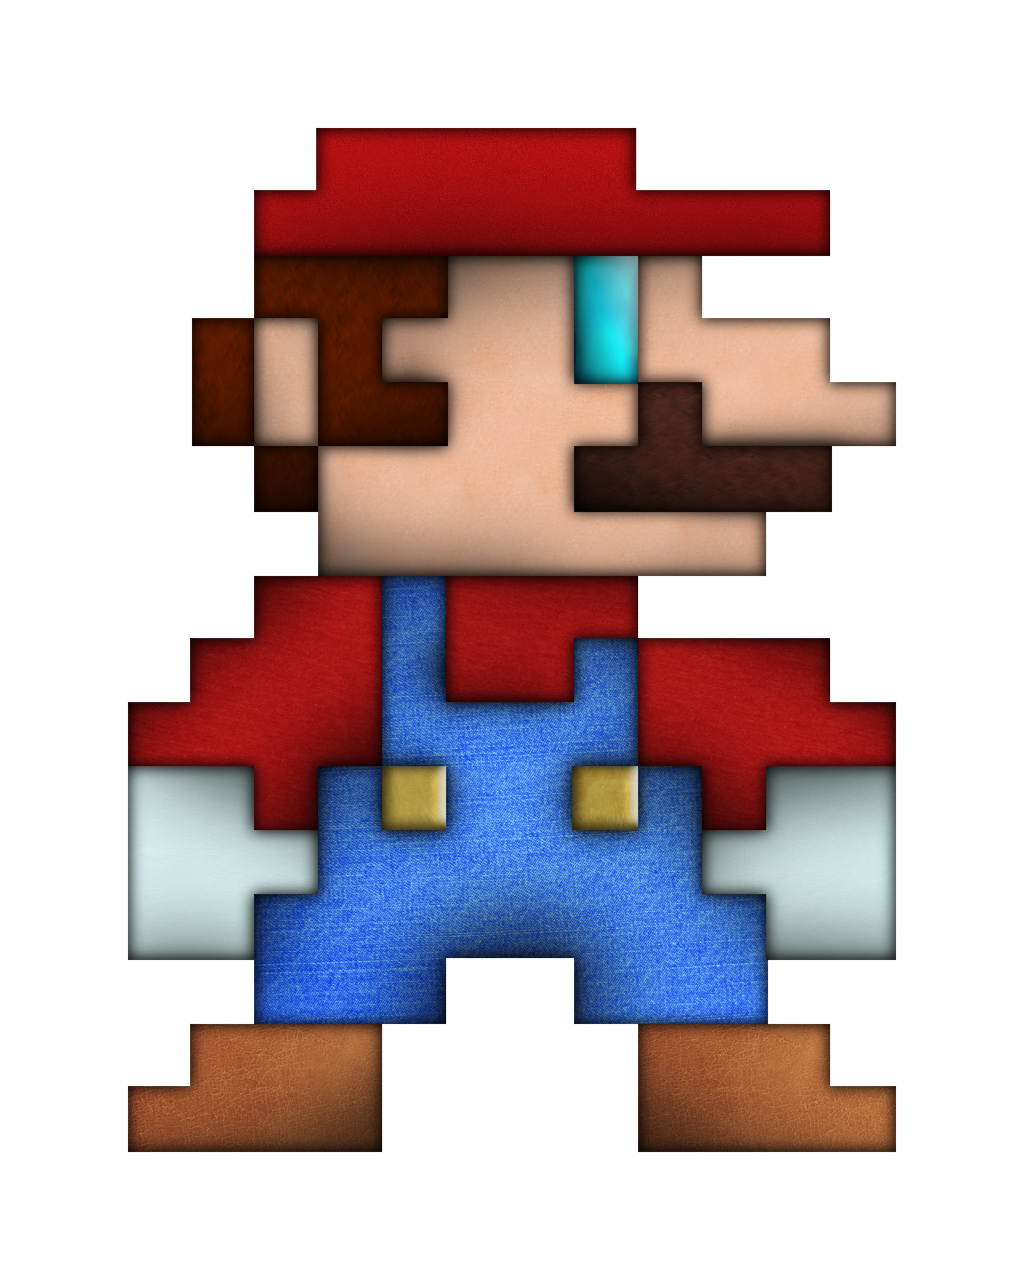 Real life 8 bit mario by brulescorrupted on deviantart - Pictures of 8 bit mario ...